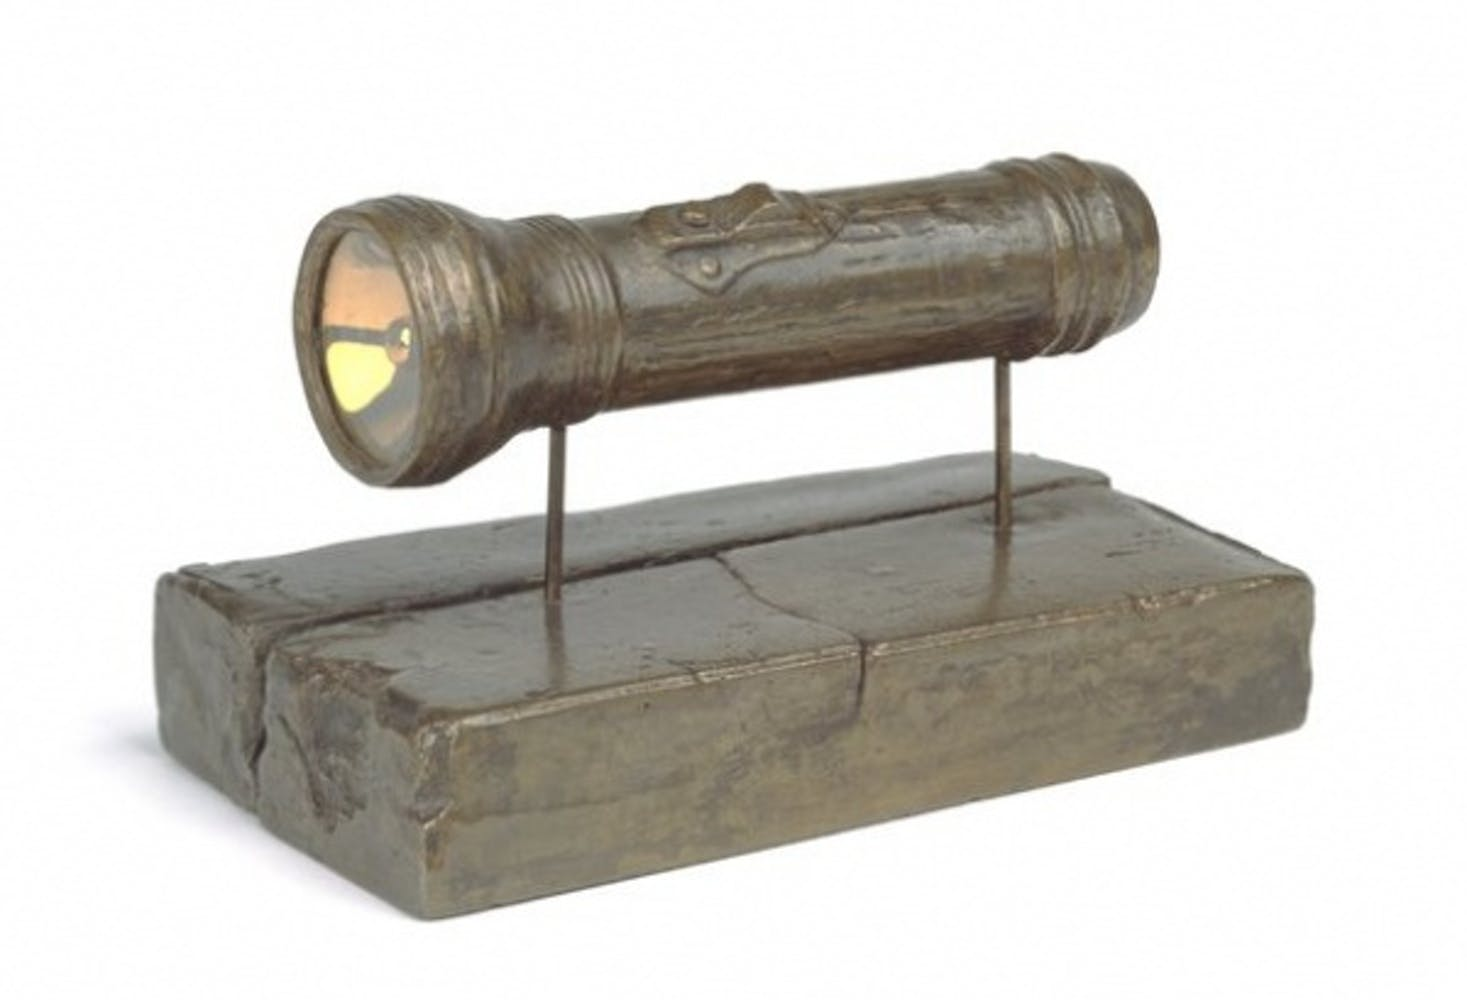 Jasper Johns, Flashlight, 1960